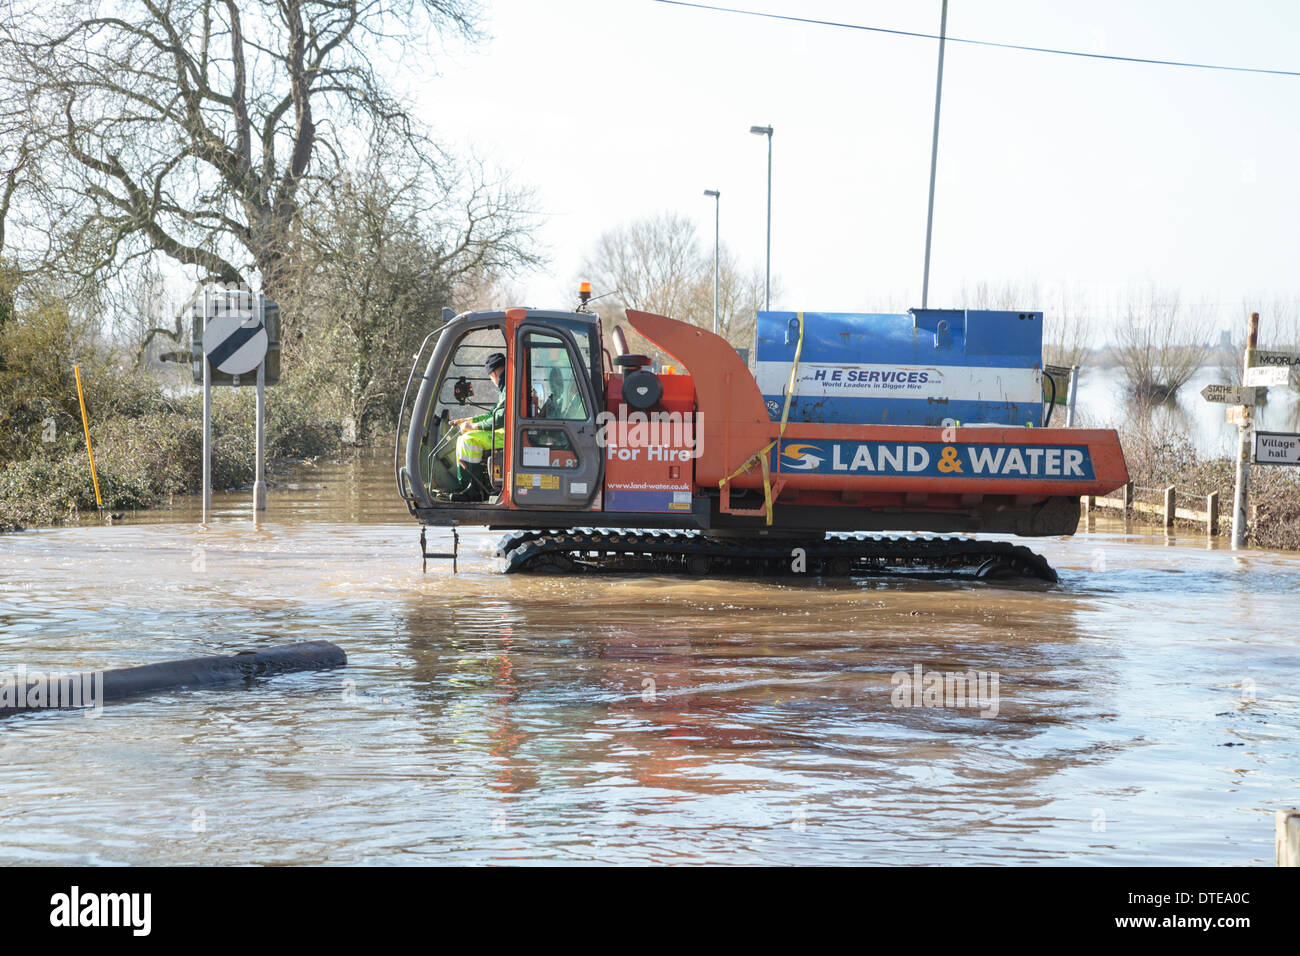 Burrowbridge, UK. 16th Feb, 2014. Workers make use of specialised vehicles during the heavy flooding at Burrowbridge on the Somerset Levels on February 16, 2014. Vehicles suitable for use in deep water are being used to remove obstacles such as tree trunks and telegraph poles from the water so that aid can be distributed to local residents. The A361 is a major arterial route across the Somerset Levels and has just experienced the worst flooding in living history and has been underwater now for seven weeks. Credit:  Nick Cable/Alamy Live News - Stock Image